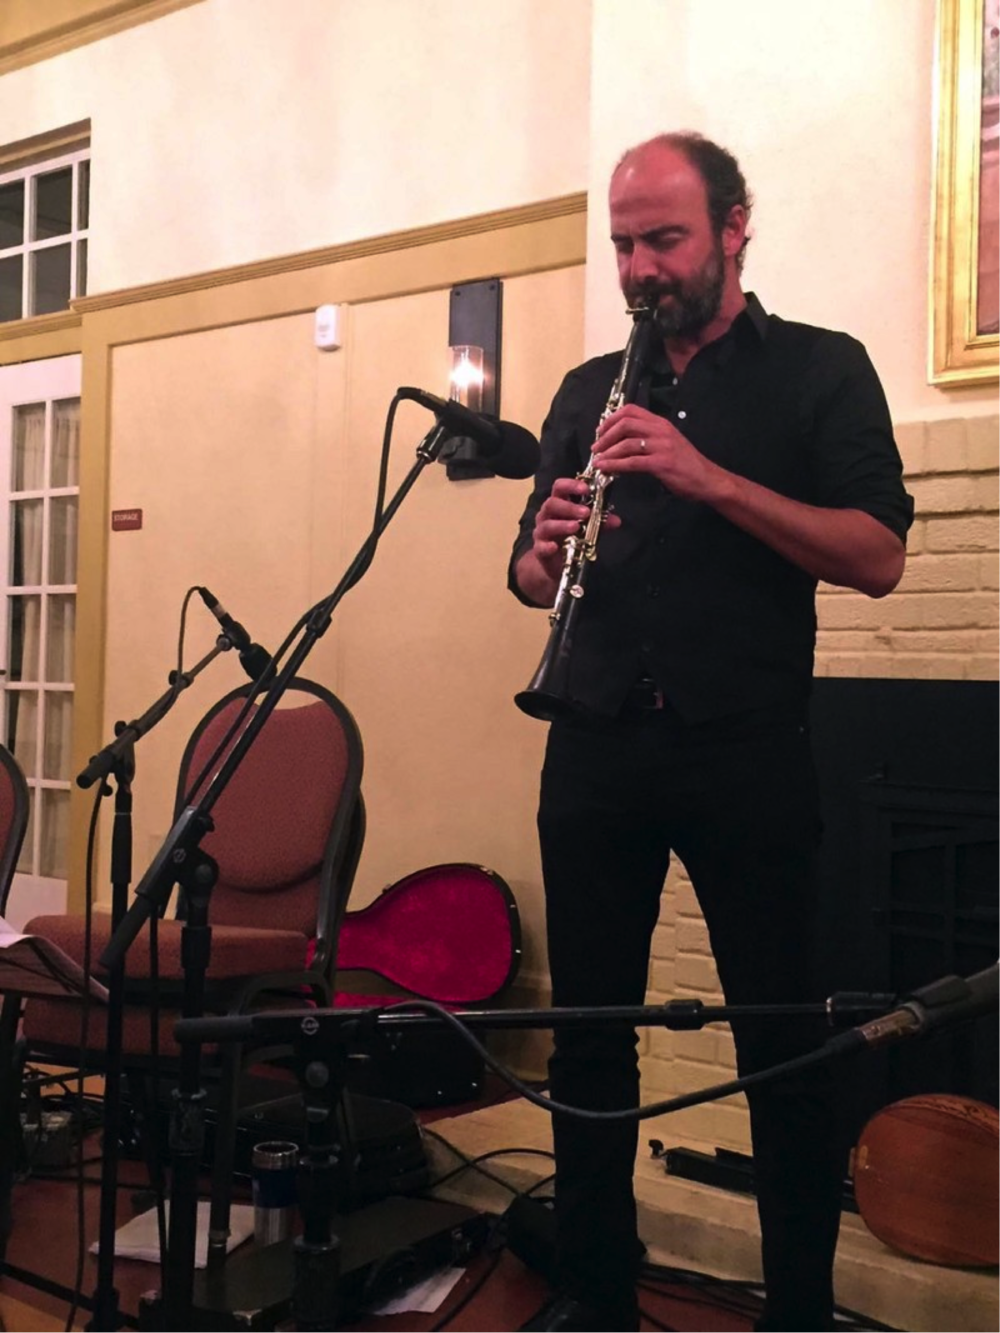 Kinan Azmeh and his clarinet fuse together in an instrumental piece dedicated to the Islamic philosopher-poet Ibn 'Arabi. (Photo by Jane Carroll)